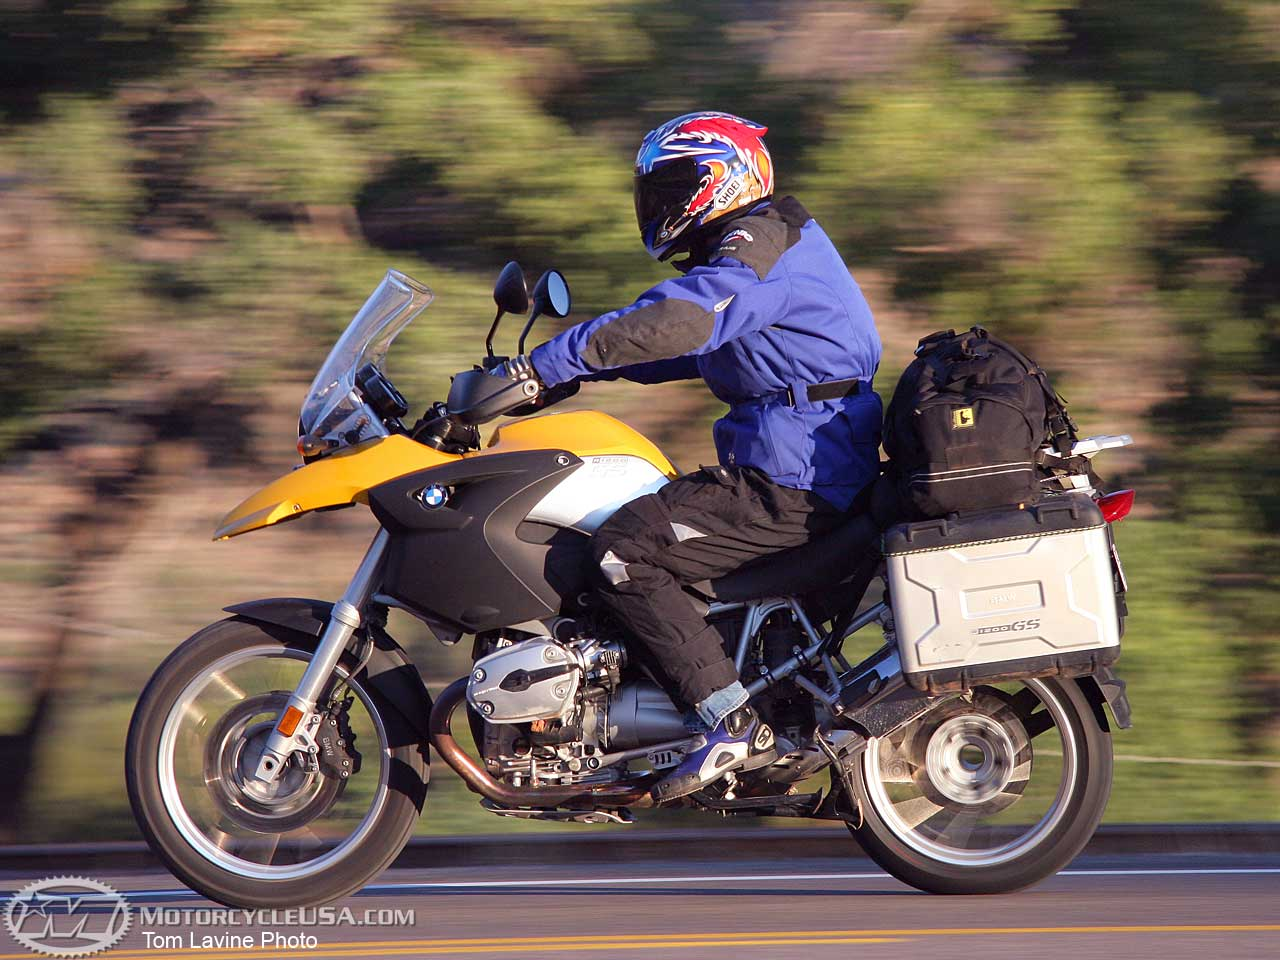 BMW R1200GS 2006 images #77996